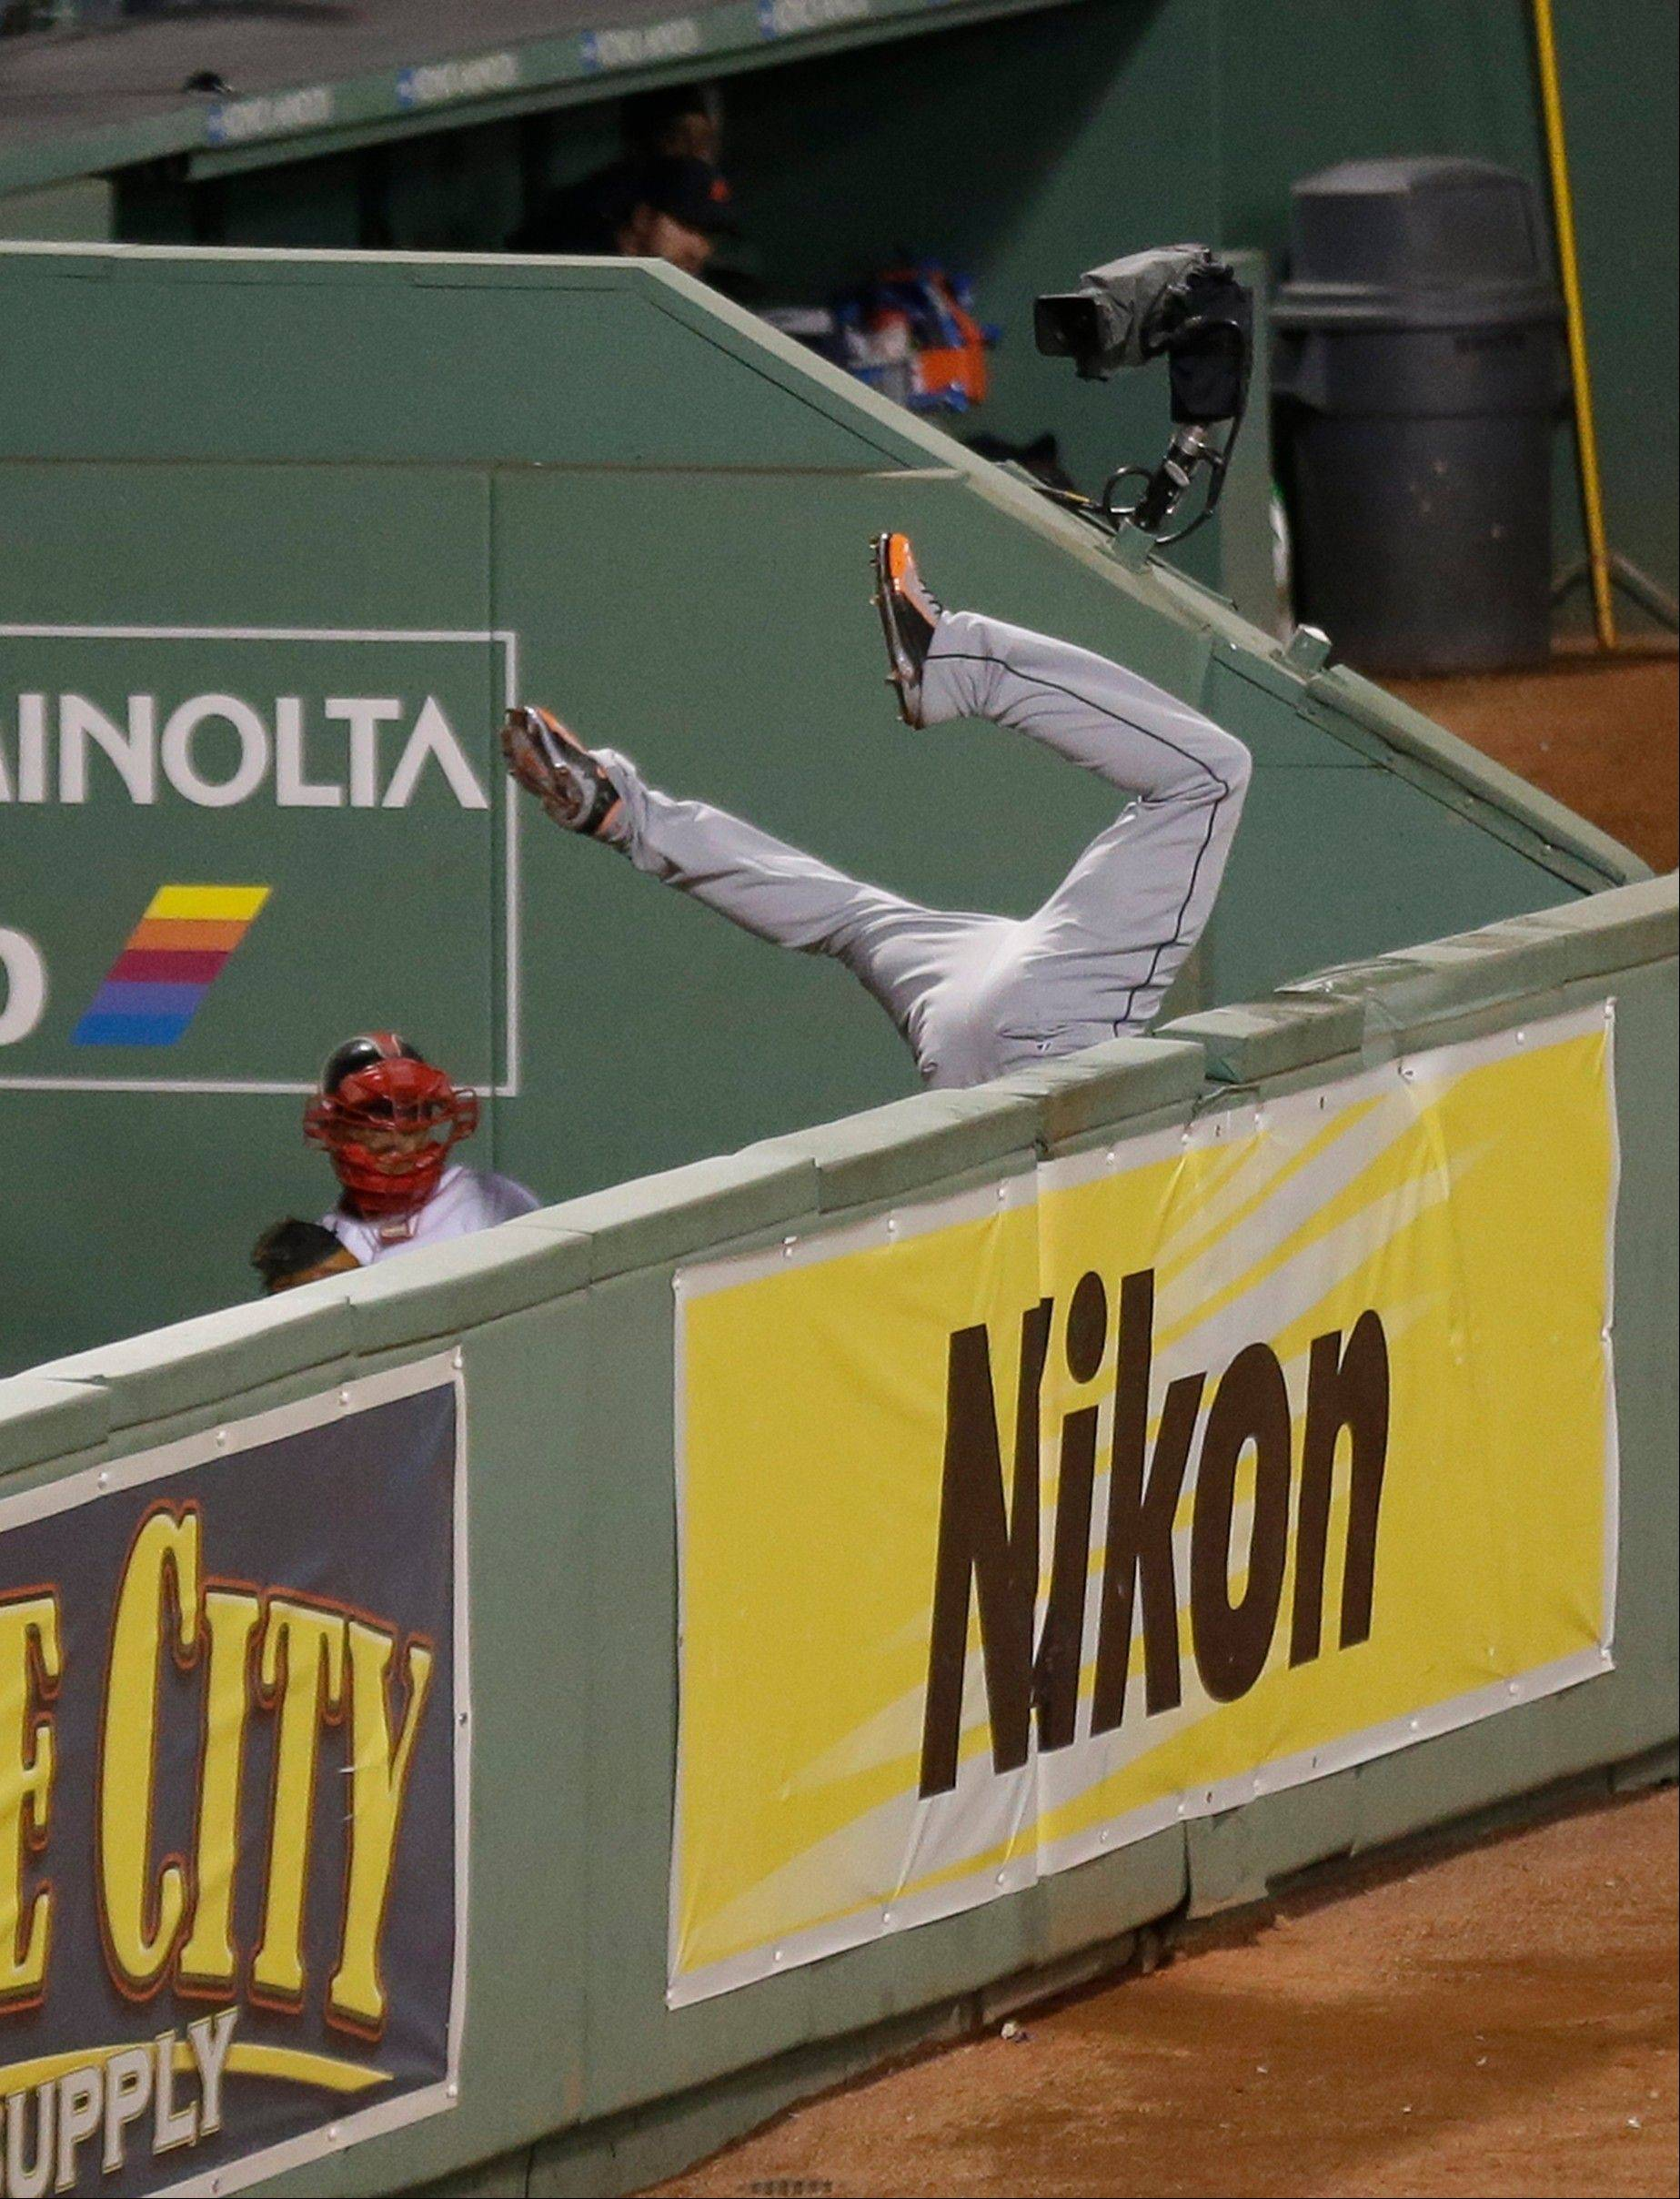 Detroit Tigers' Torii Hunter leaps and misses a catch as Boston Red Sox's David Ortiz hits a grand slam home run in the eighth inning during Game 2 of the American League baseball championship series Sunday, Oct. 13, 2013, in Boston.